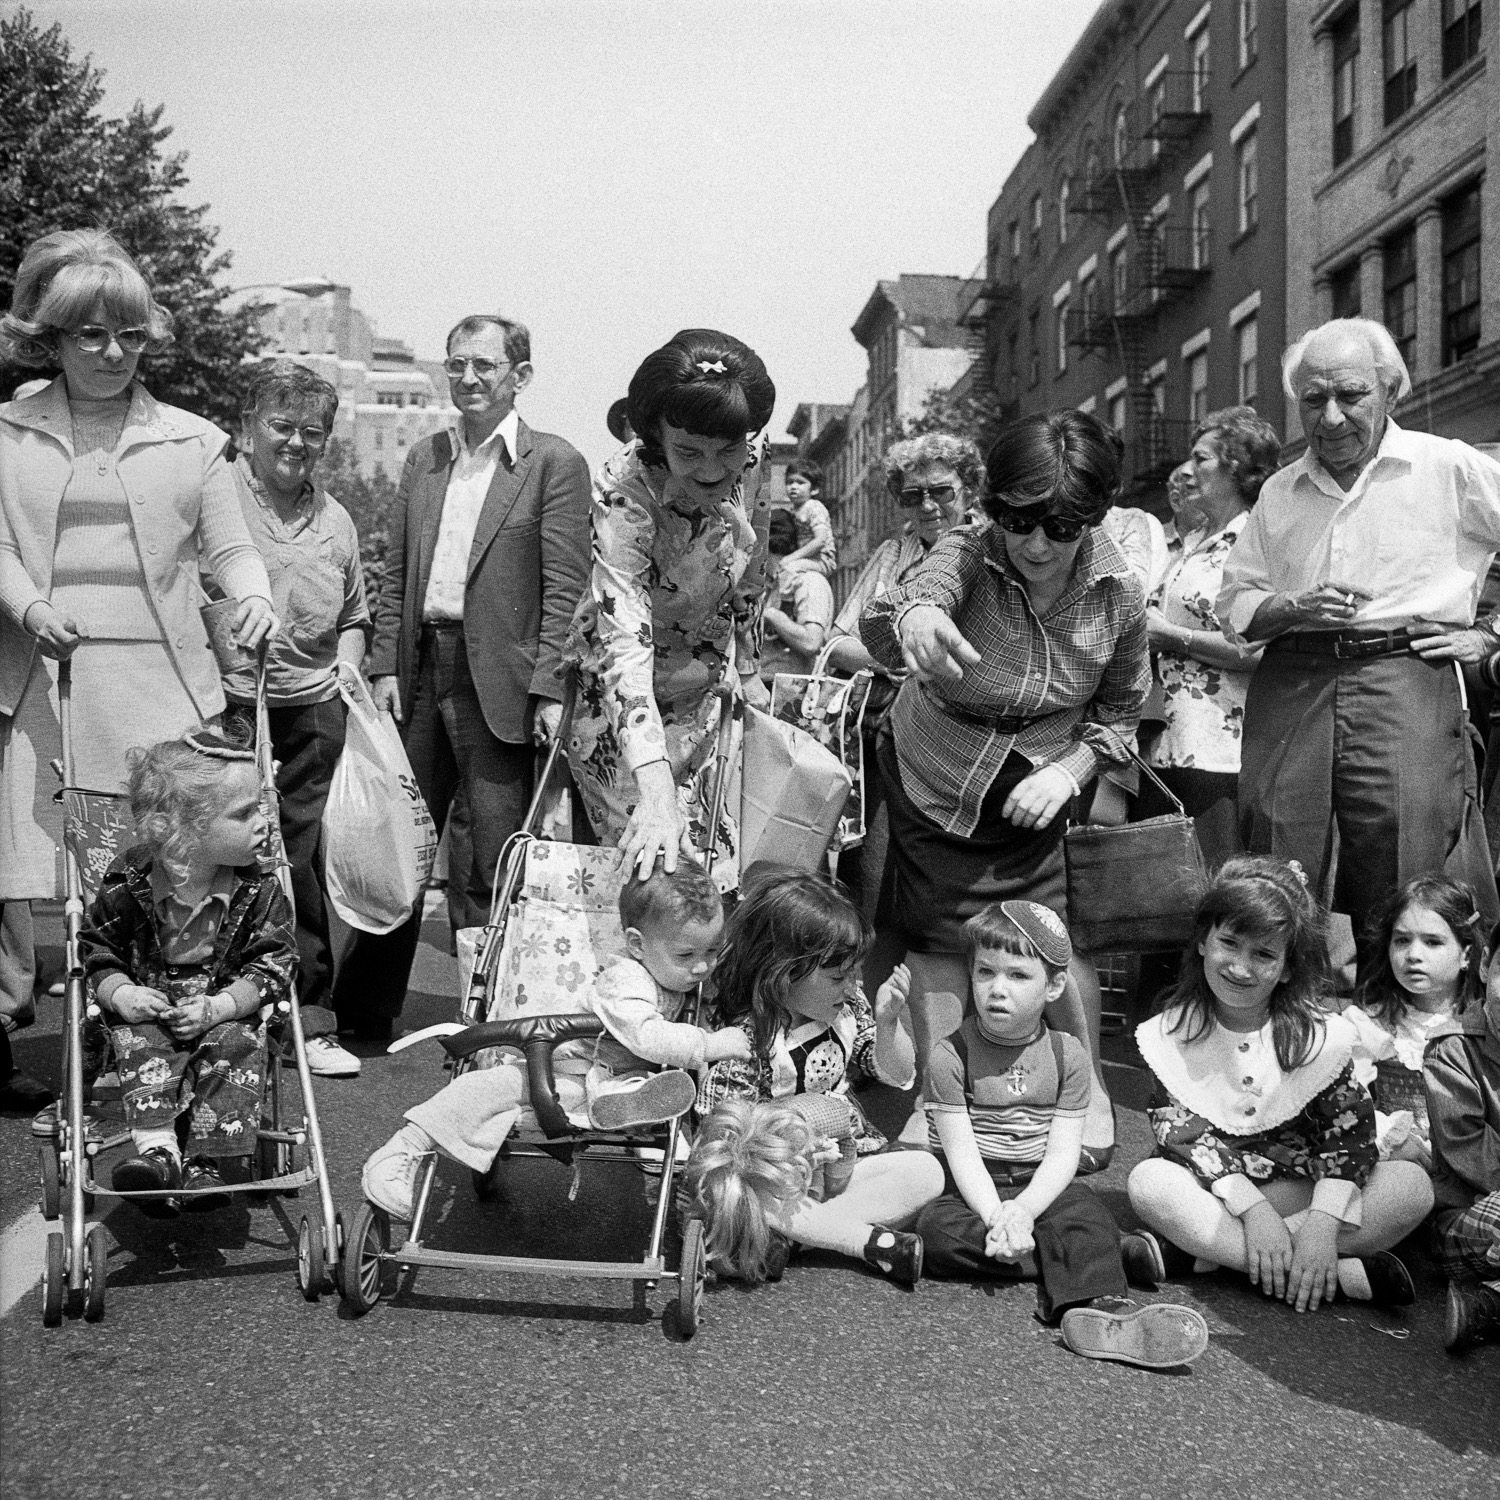 Baby carriages, children and adults at the Lower East Side Street Festival NY, NY June 1978